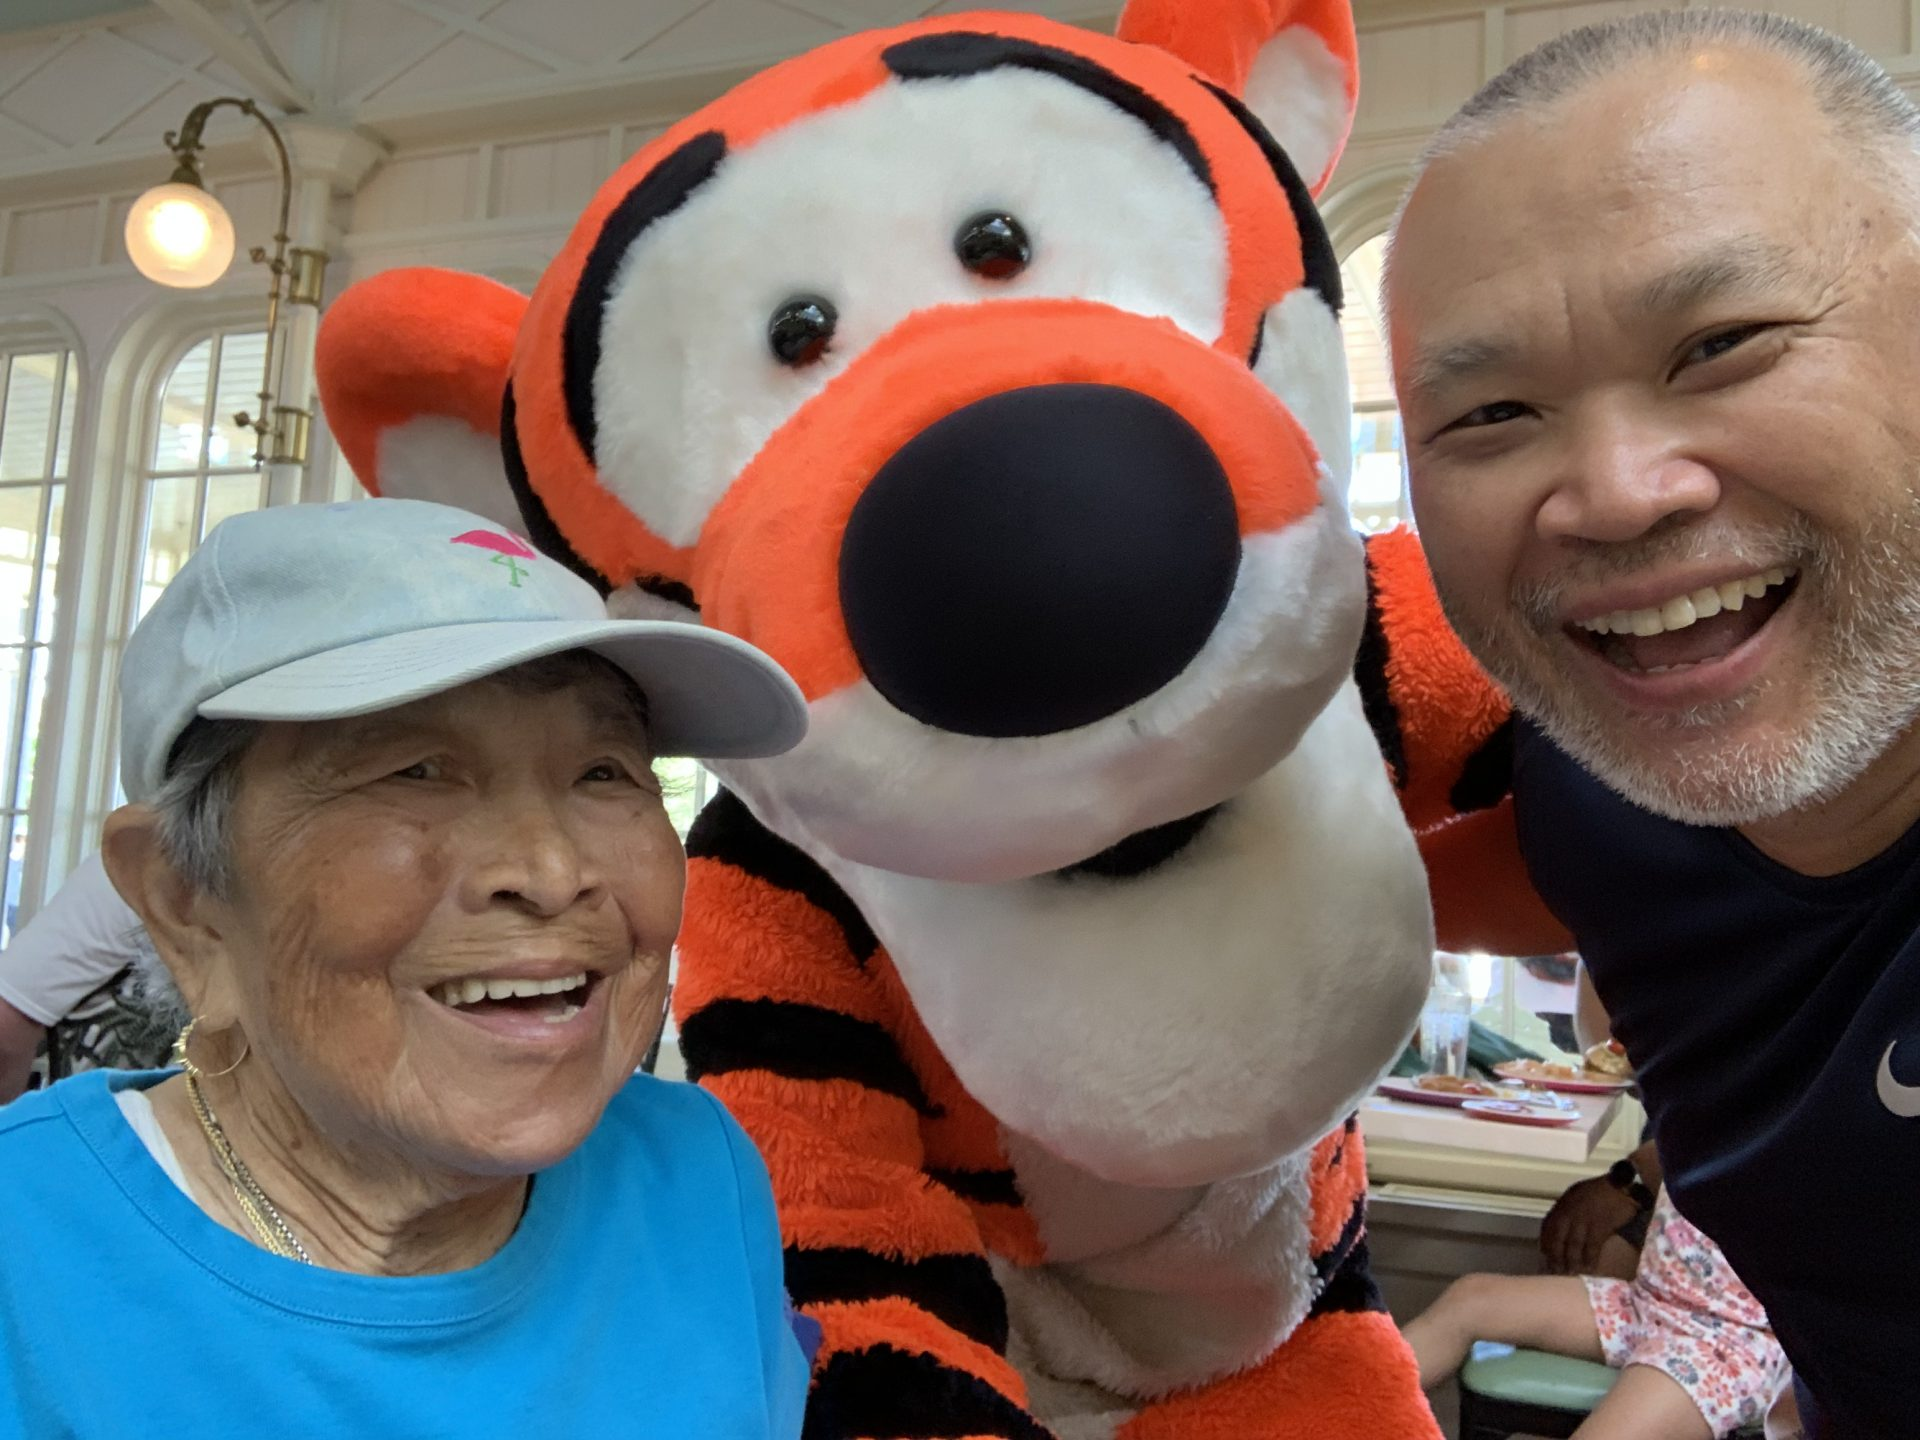 Lunch with Tigger at the Crystal Palace, Magic Kingdom June 21, 2019